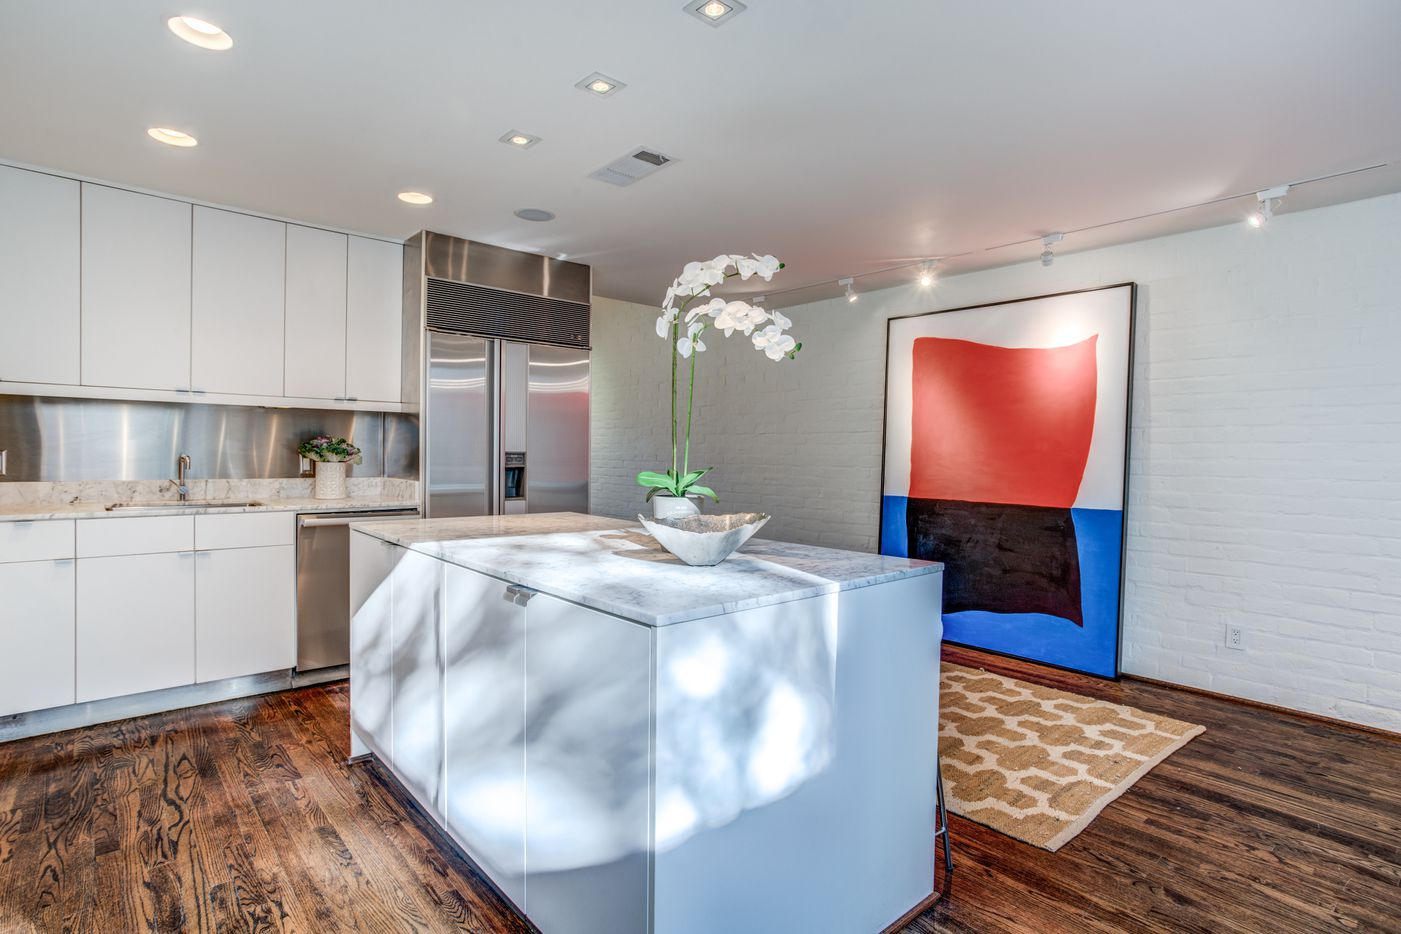 Noted Dallas architect Frank Welch designed plenty of Texas-sized stunners in Dallas, but this townhouse at 4021 Travis St. in Uptown puts his design on display in a smaller form.